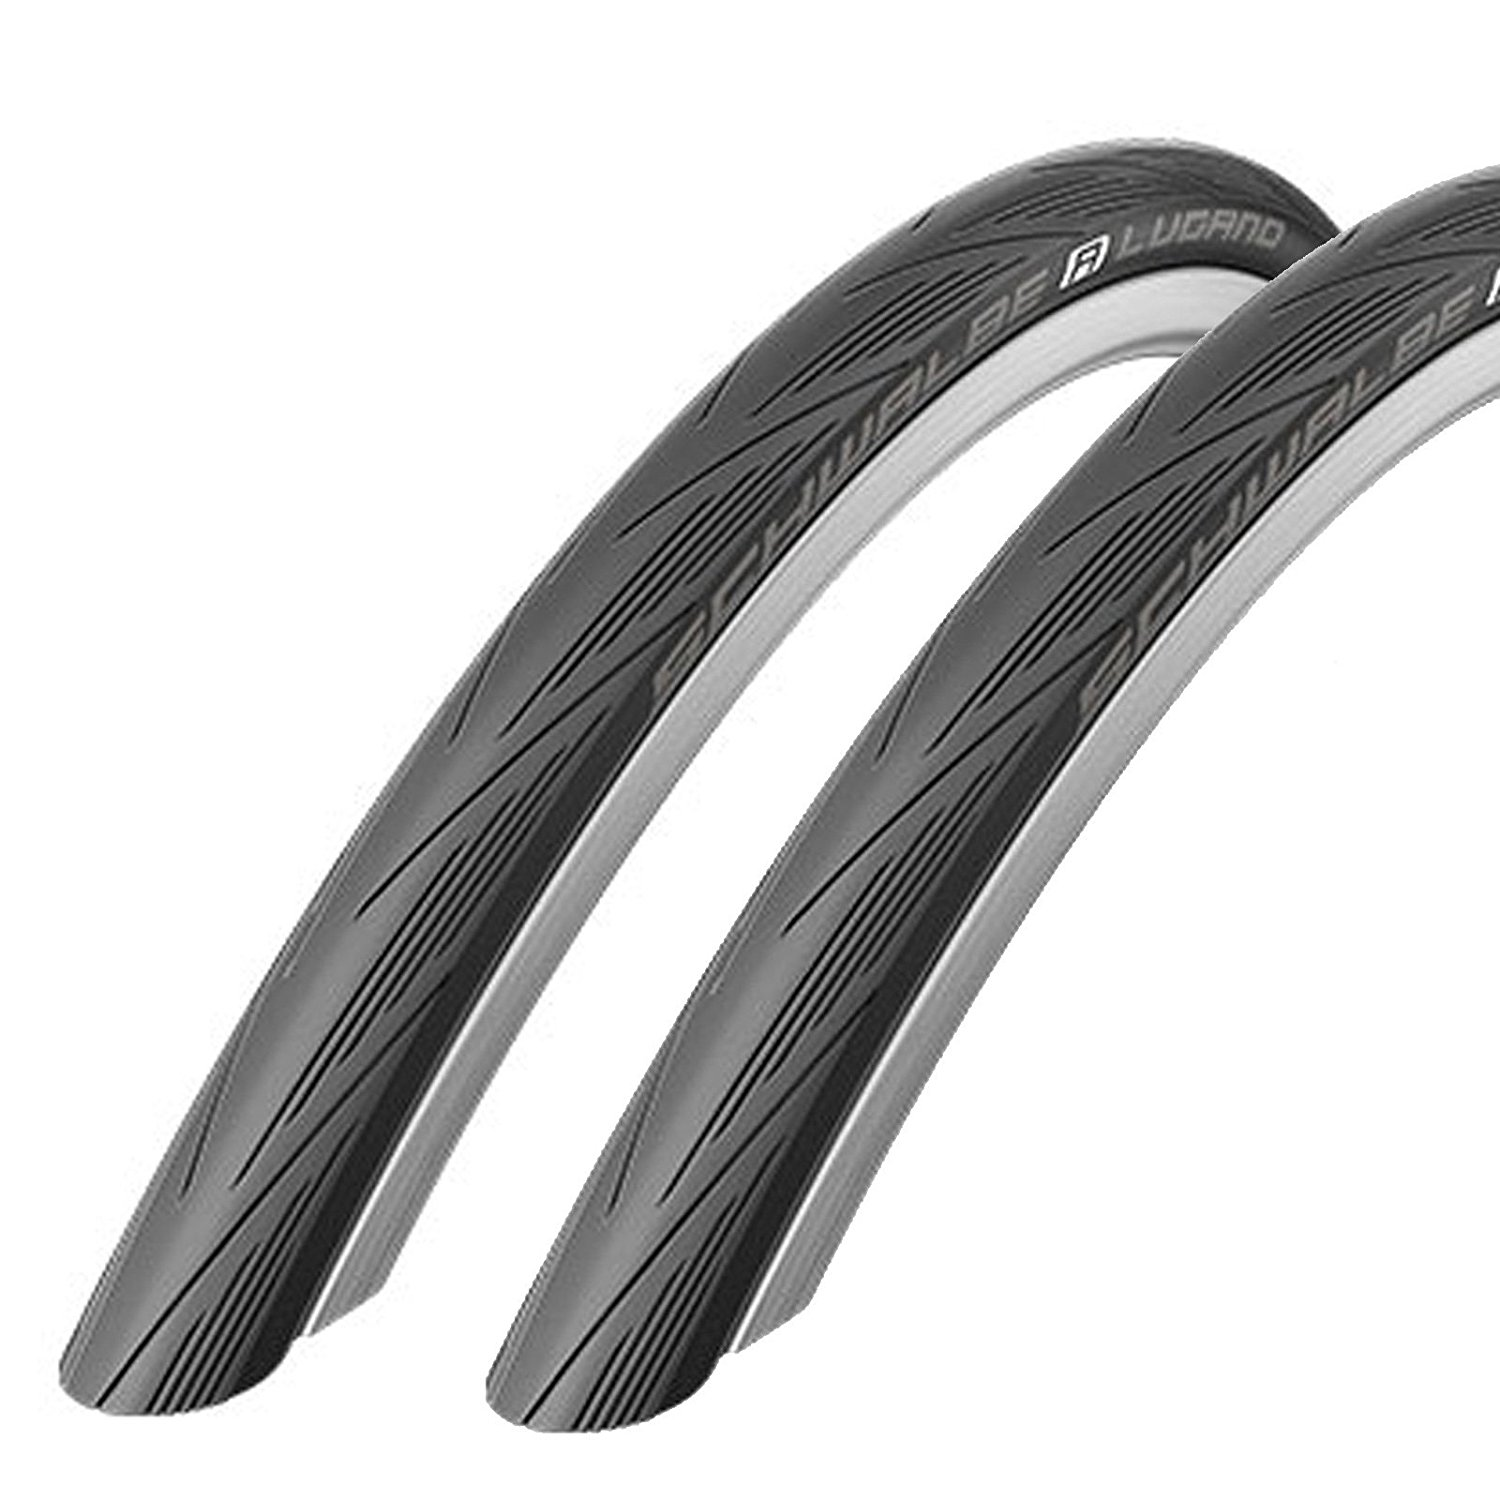 Schwalbe Lugano 700c x 25 Road Racing Bike Tires (with Puncture Protection) (PAIR)